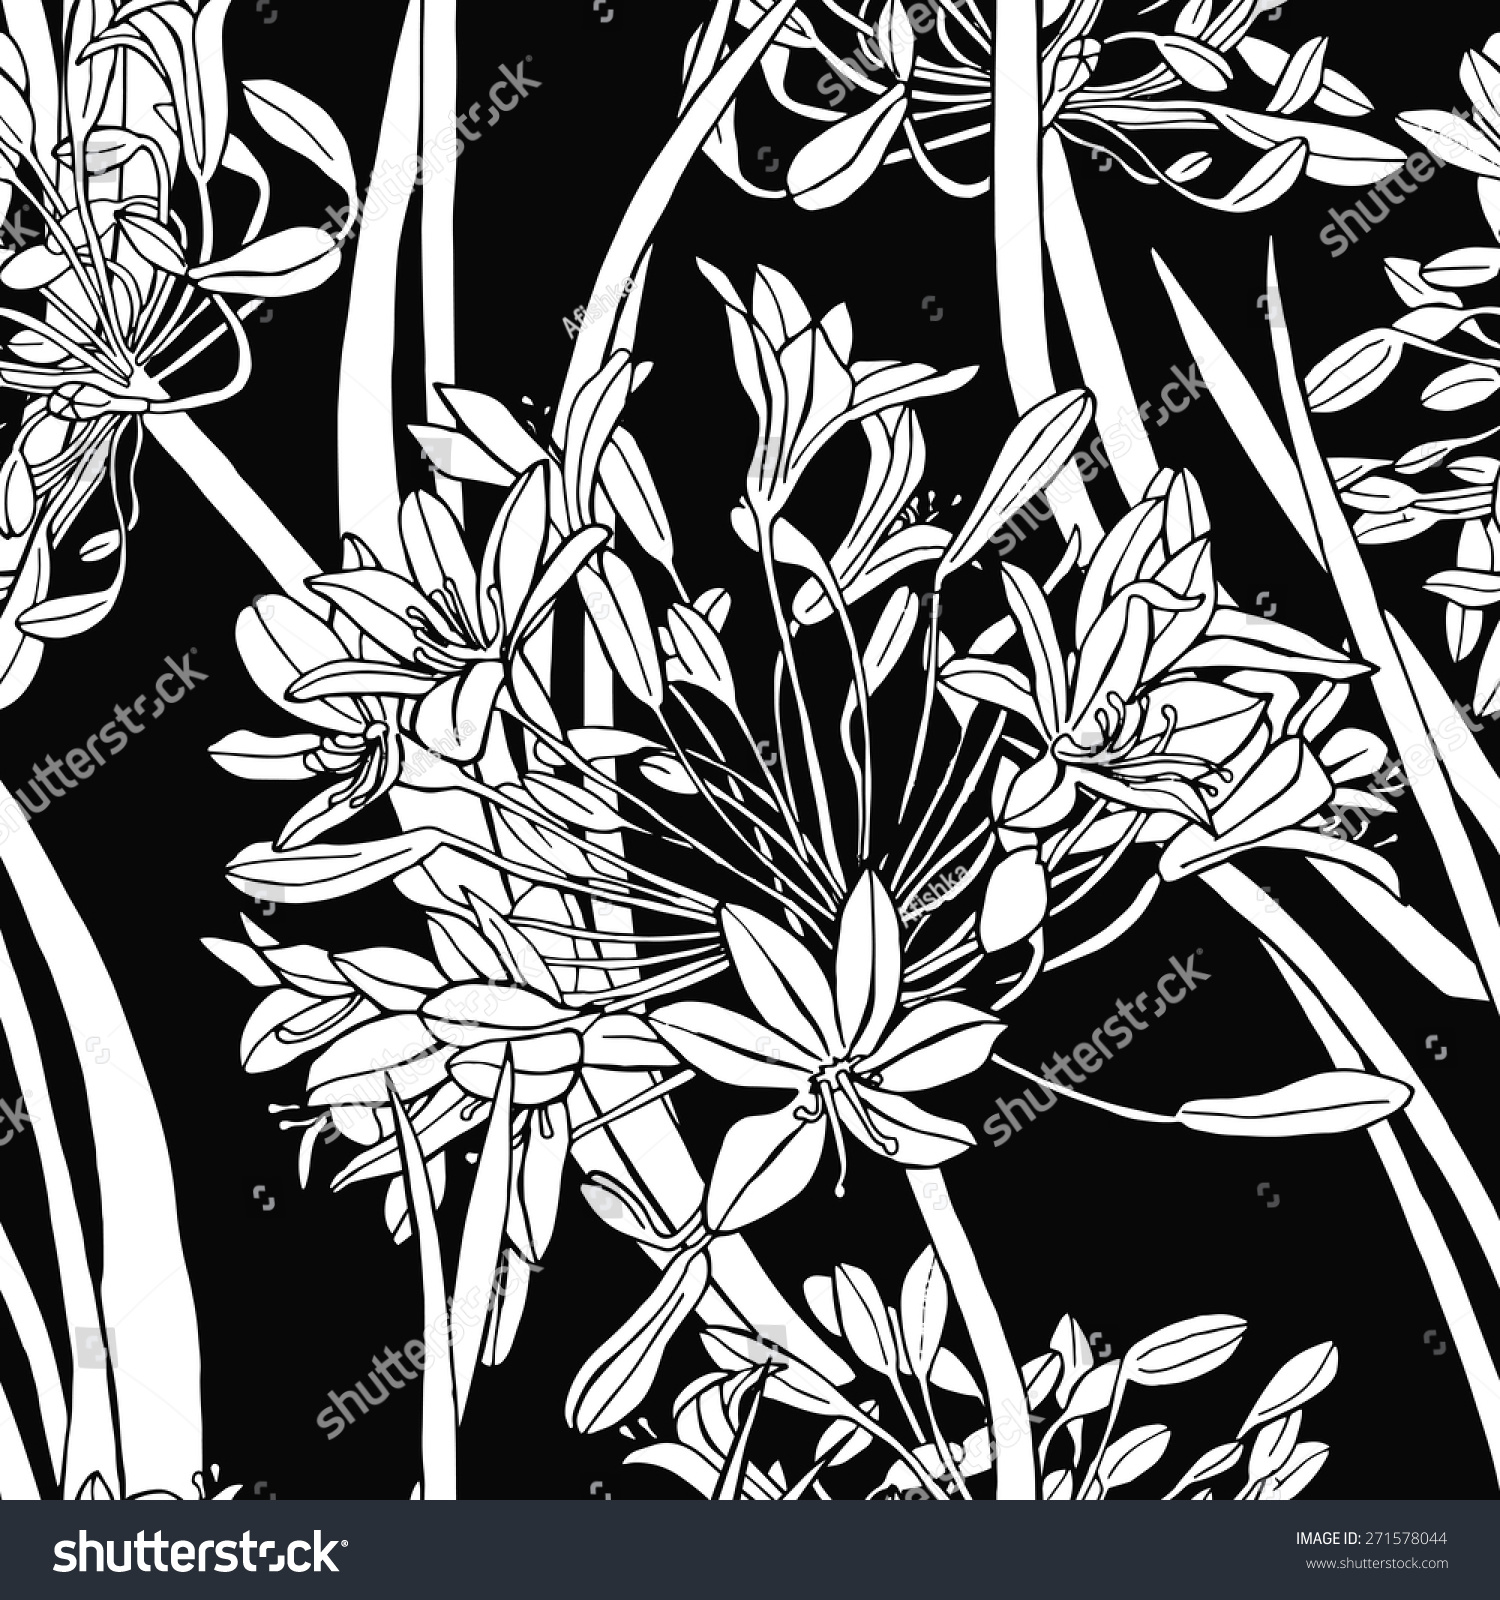 Seamless botanical floral pattern with umbrellas agapanthus vector black and white illustration